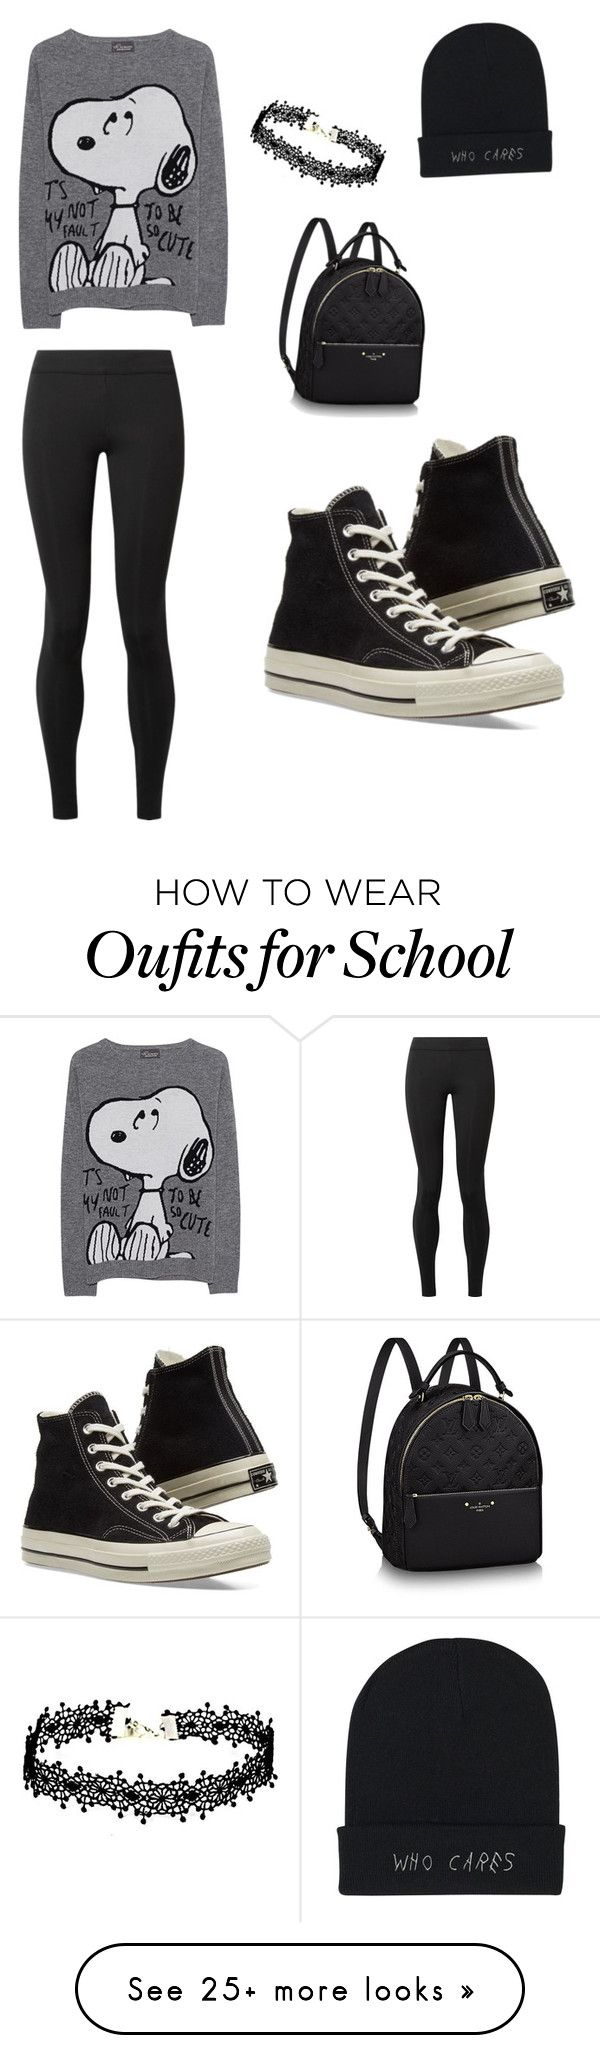 """School"" by shyann-zellars on Polyvore featuring The Row, Princess Goes Hollywood, Converse and beautiful"